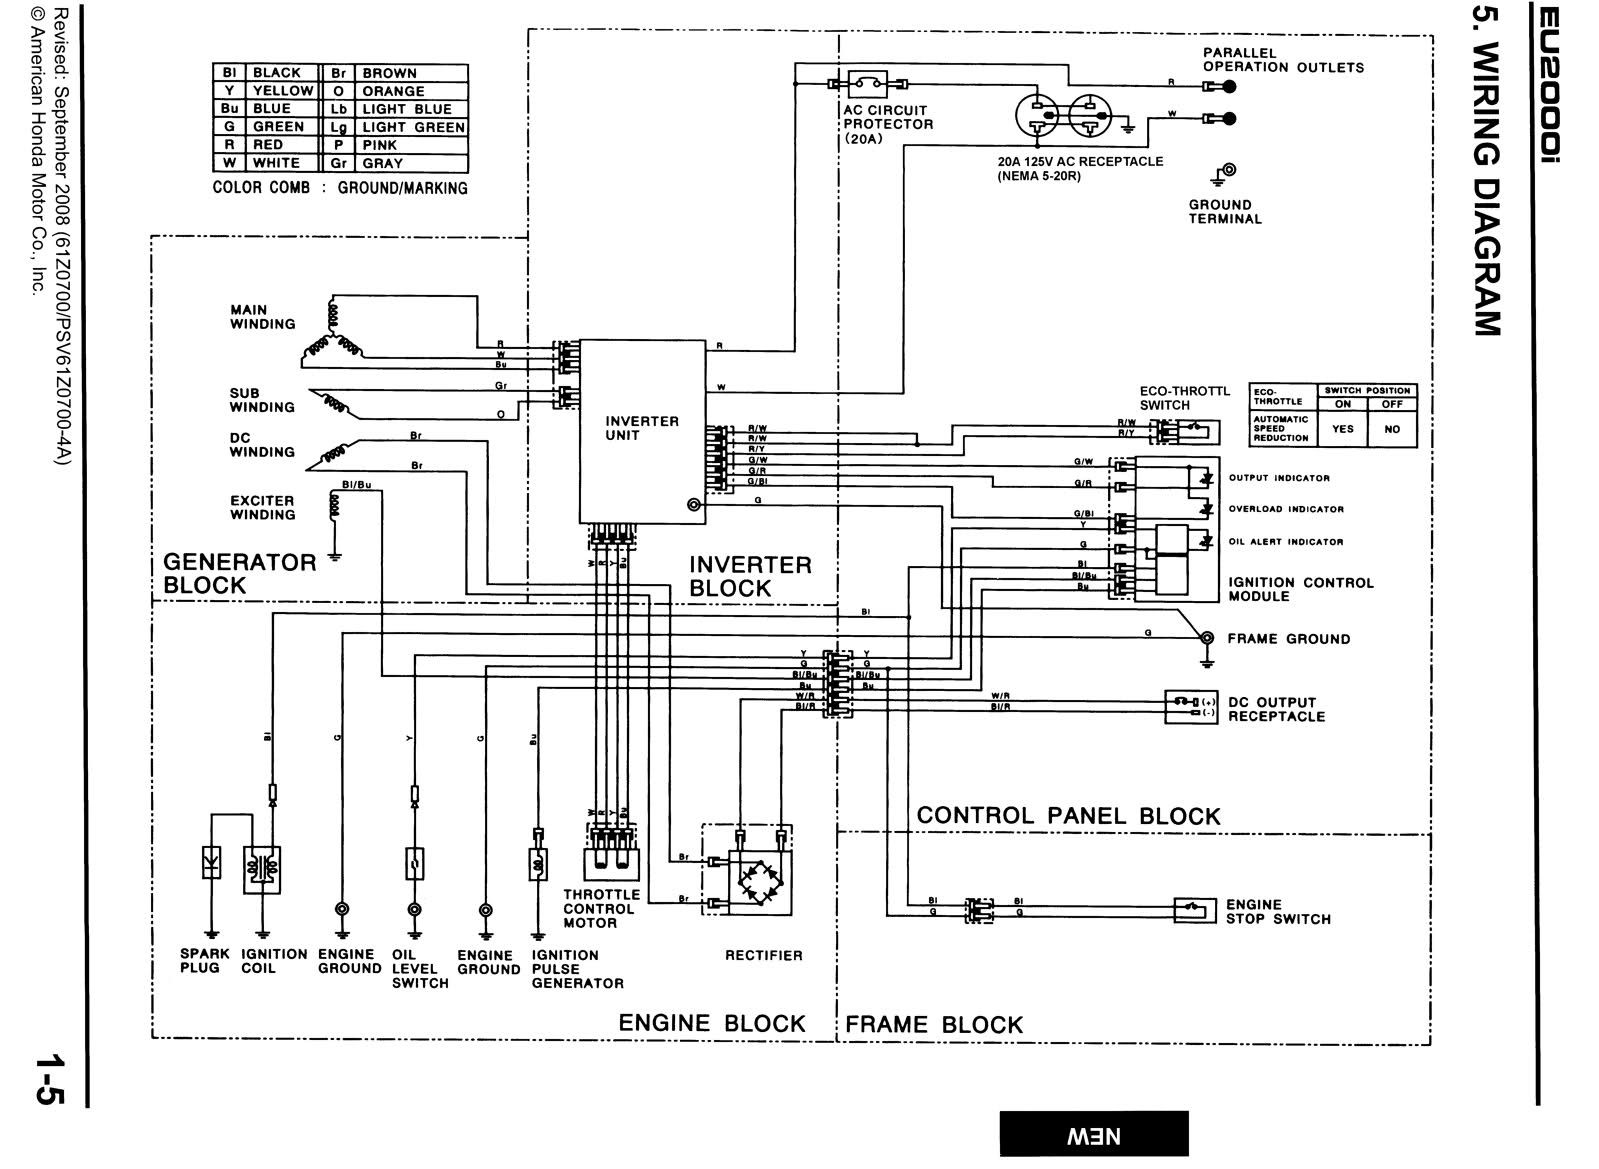 small resolution of honda generator schematics wiring diagram mega honda generator schematics